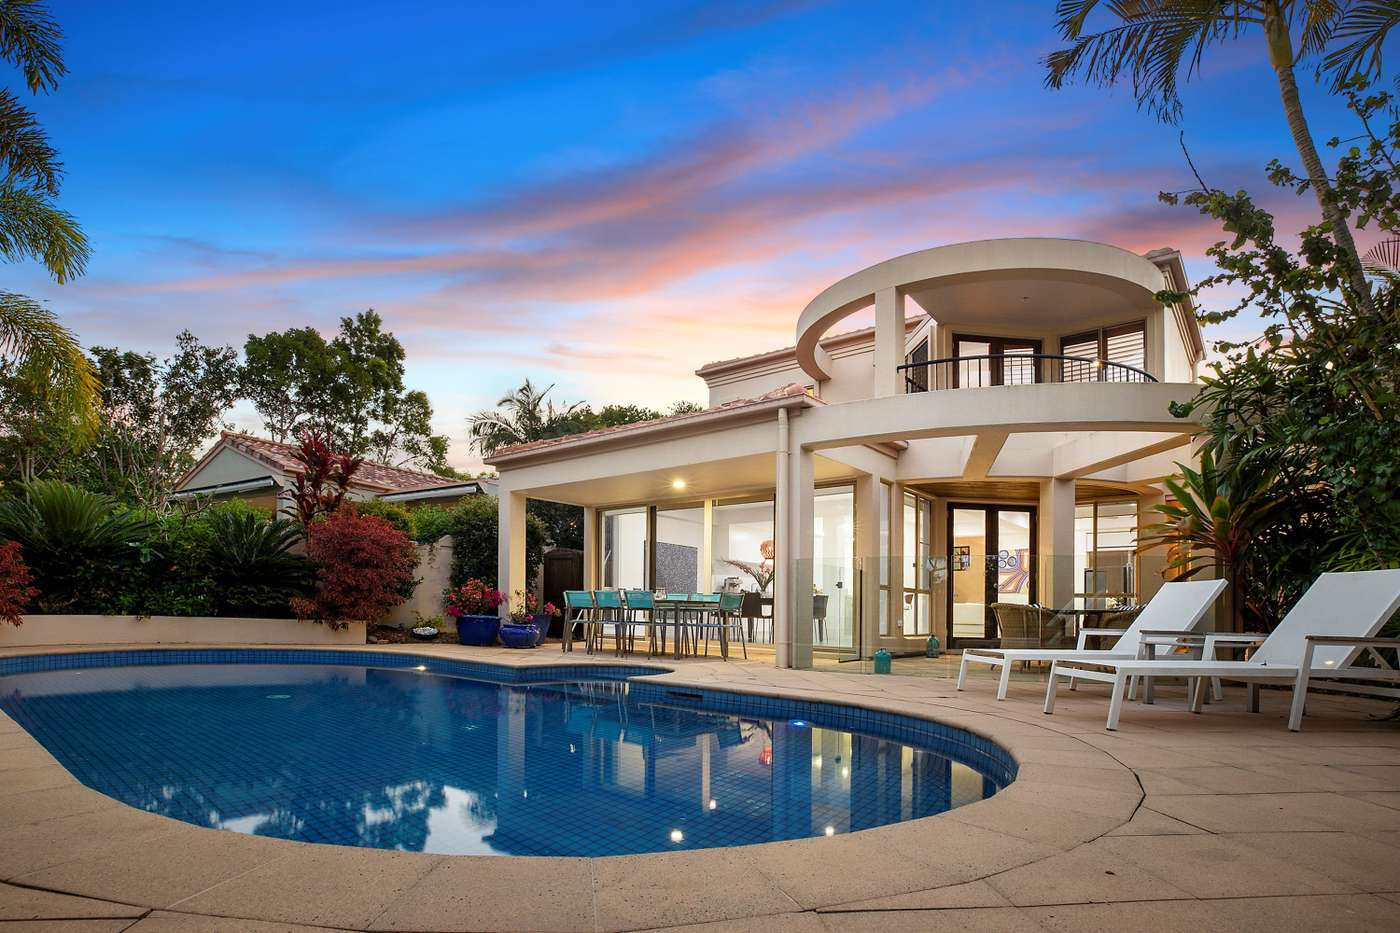 Main view of Homely villa listing, Unit 314/61 Noosa Springs Dr, Noosa Heads, QLD 4567